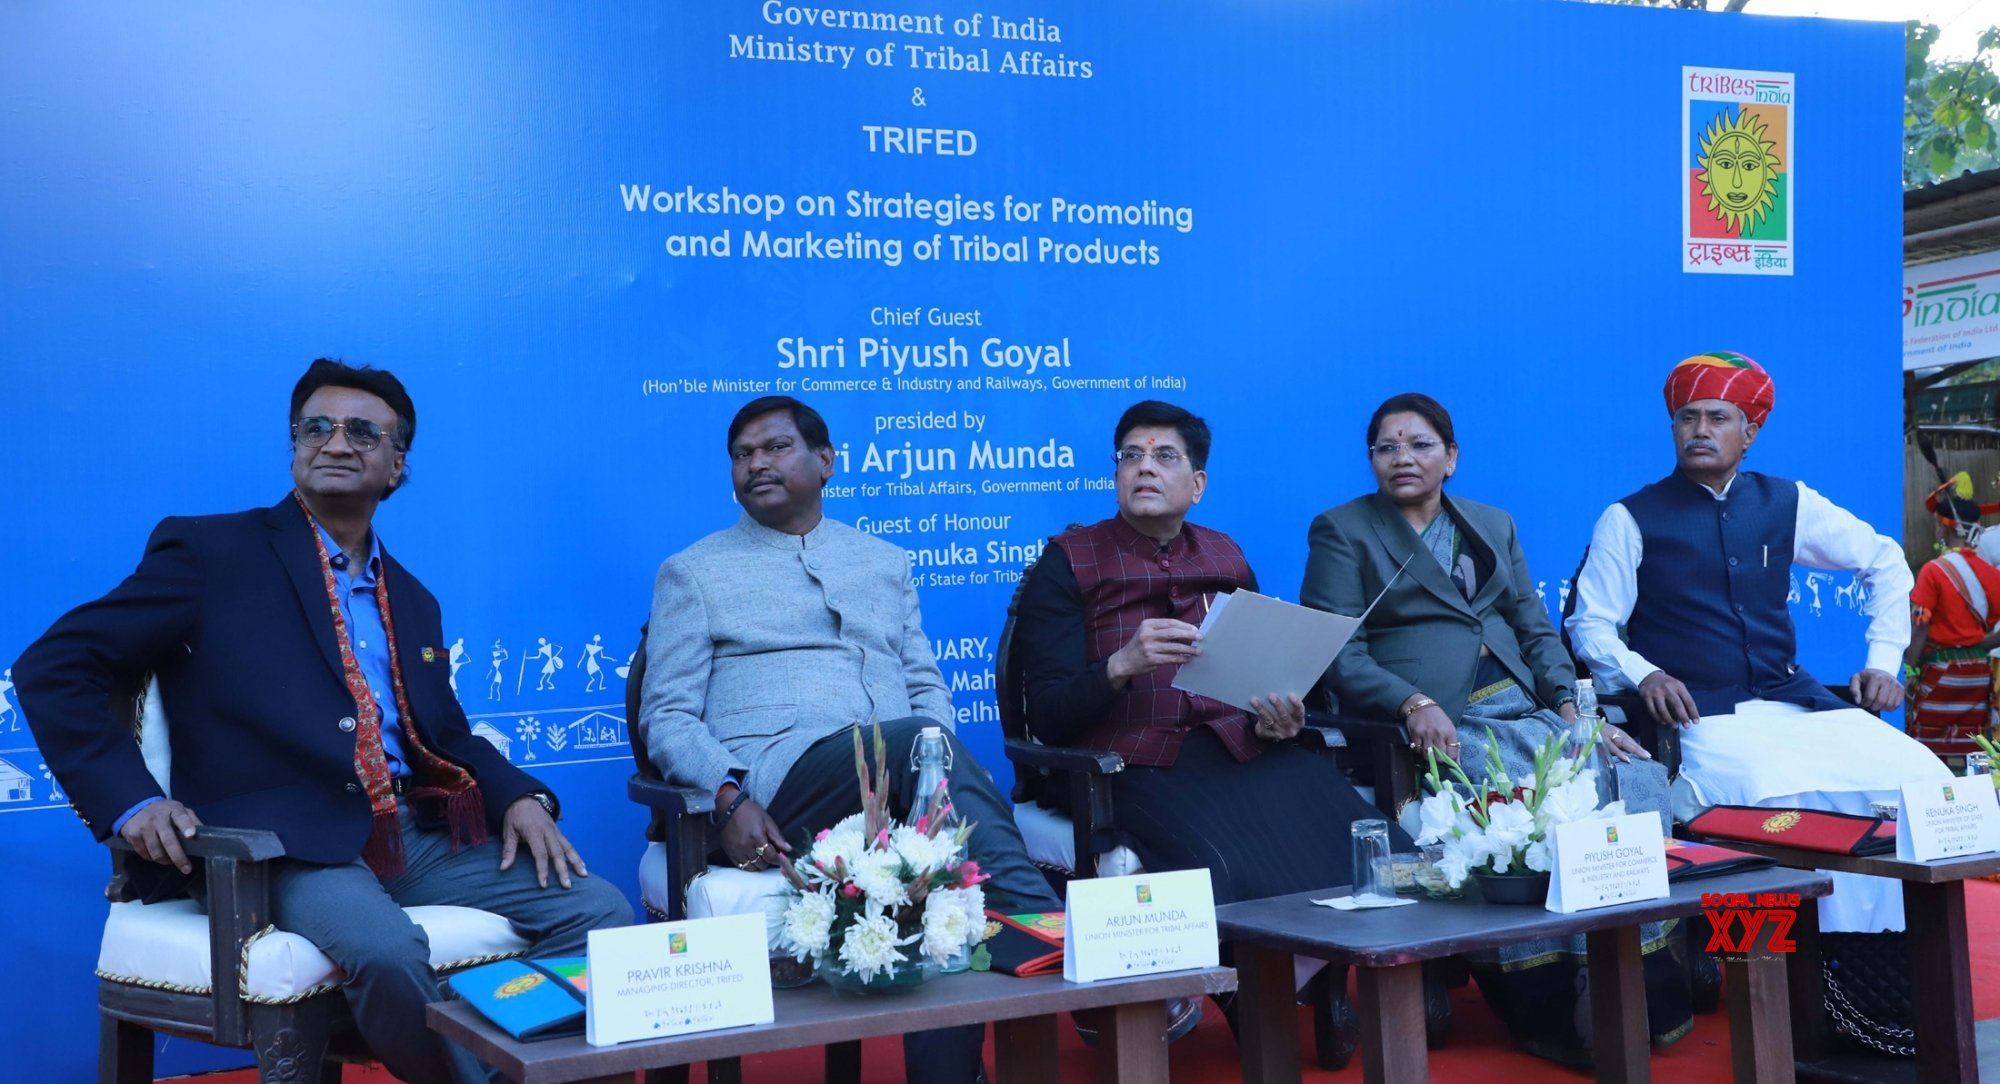 New Delhi: Workshop on Strategies for promoting and marketing of Tribal products #Gallery